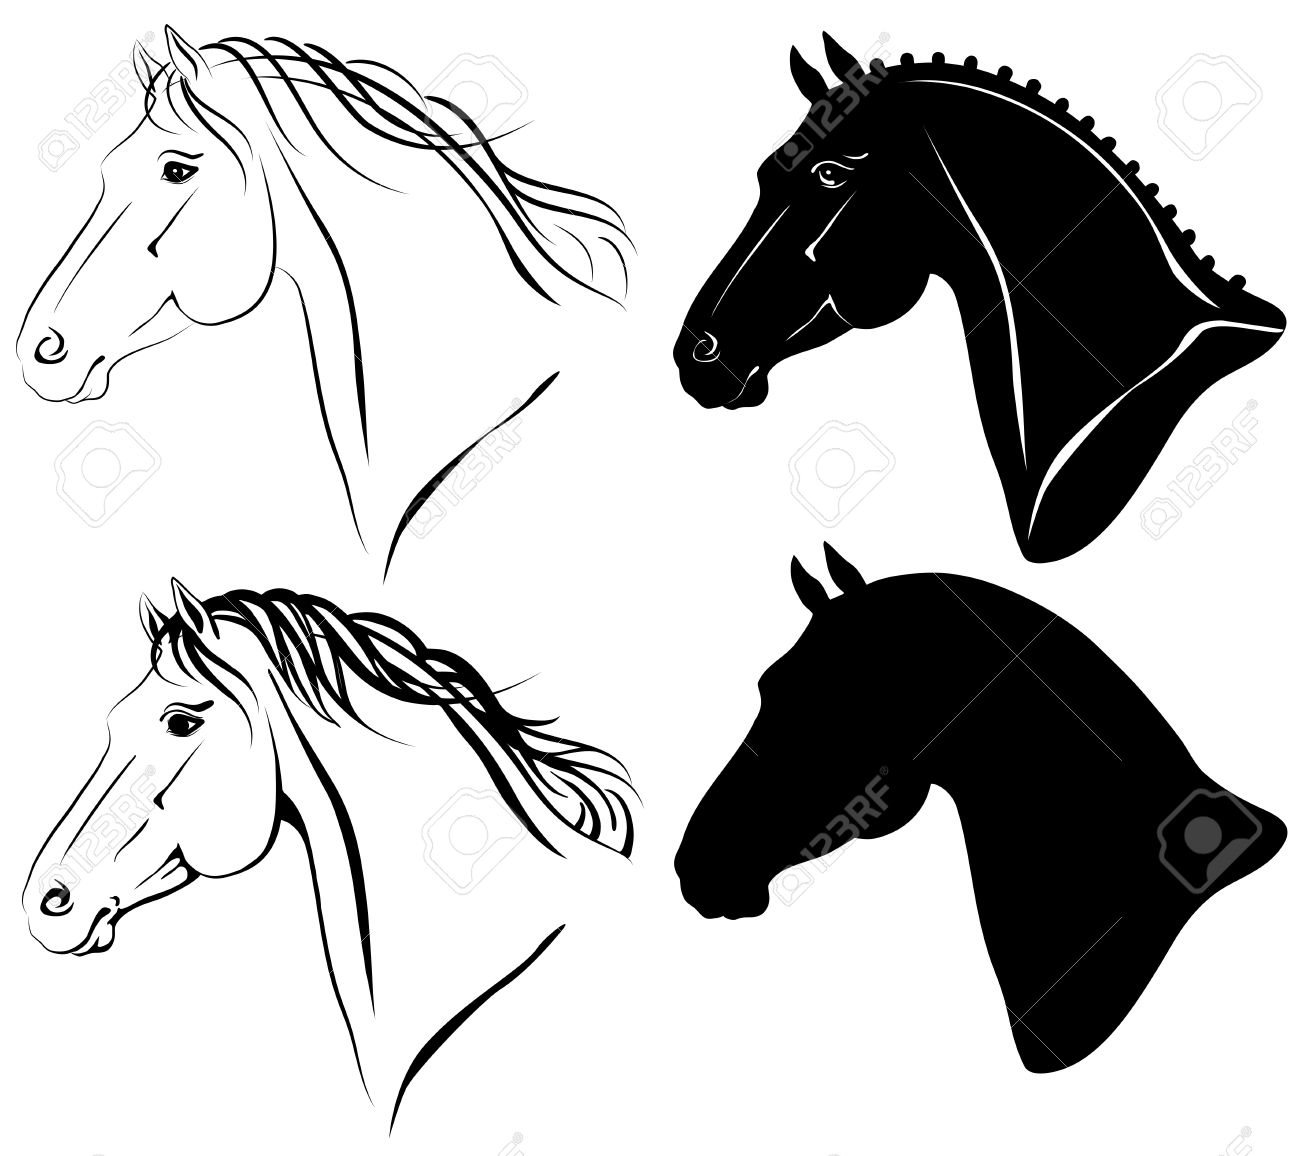 Cavallo clipart #5, Download drawings